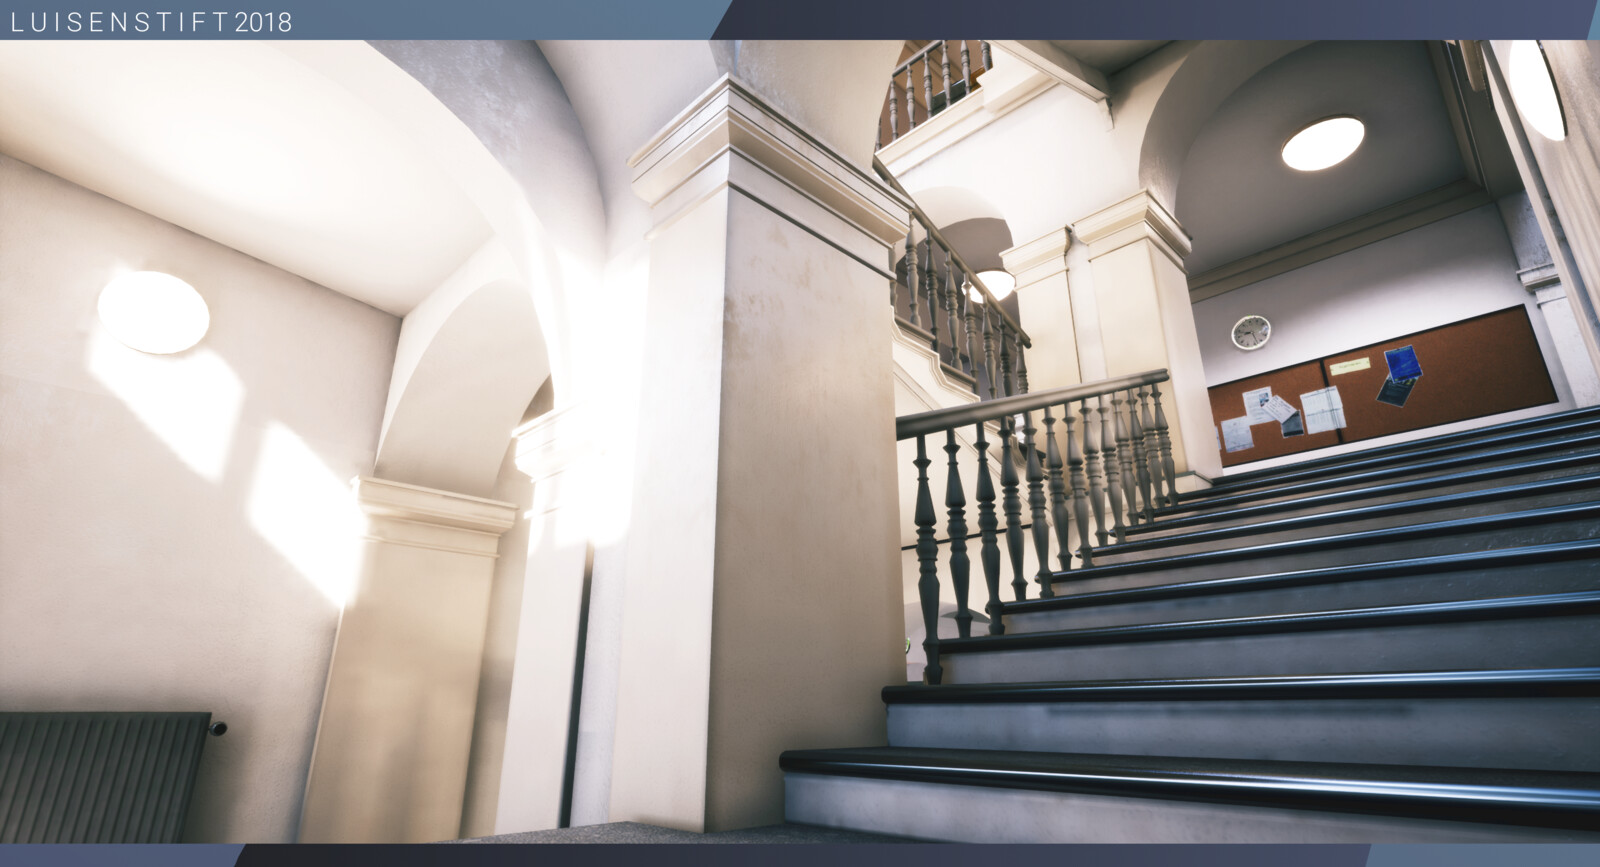 Main staircase, overlooking the first and second floors of the building.